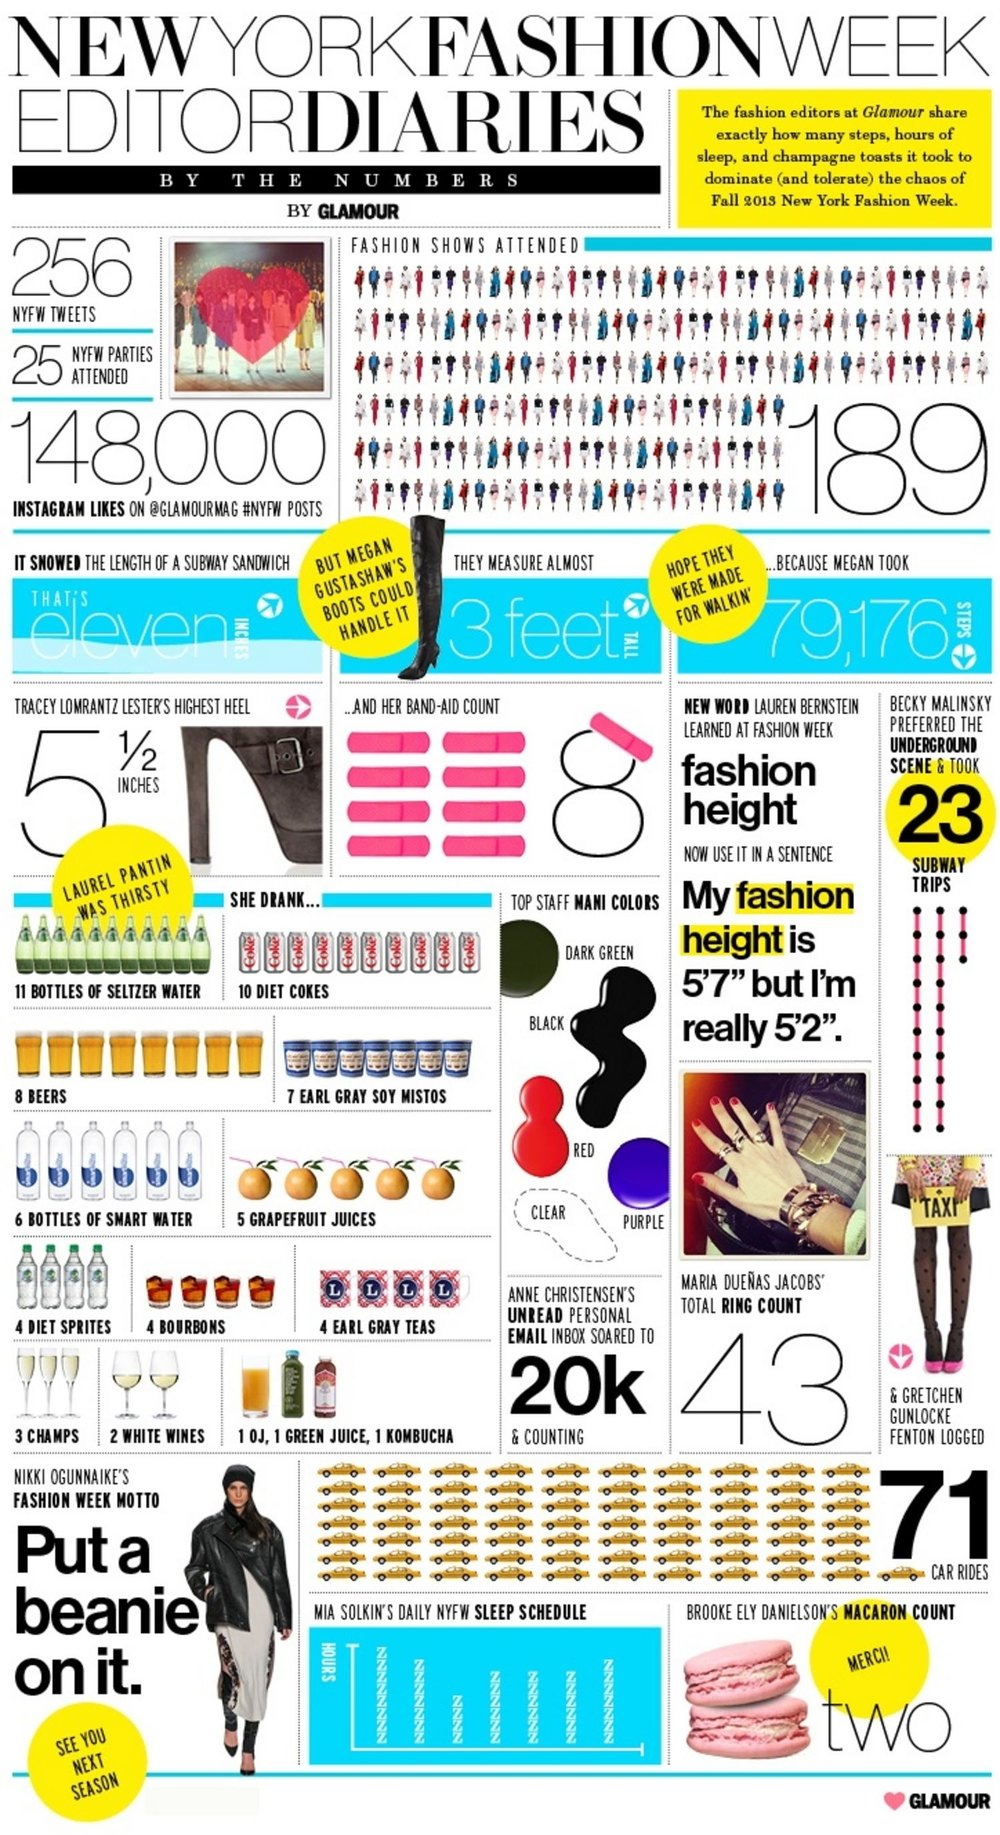 fashion-2013-02-new-york-fashion-week-by-the-numbers-infographic-glamour-editors-main.jpg